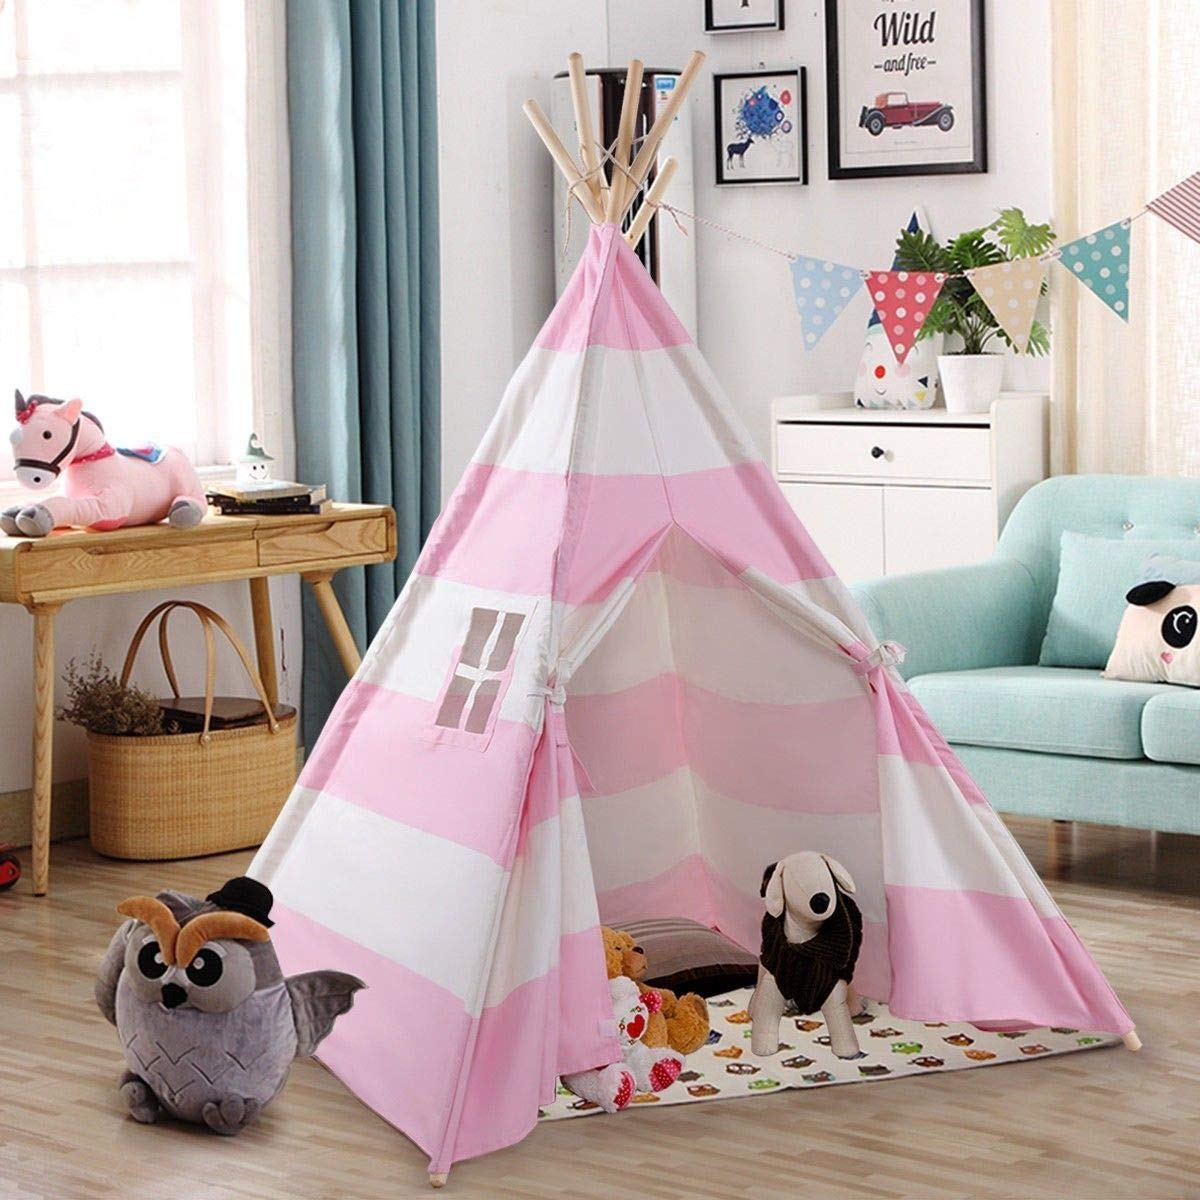 GooGGIG 5 Ft Sweetheart Playhouse Indian Teepee Tent, Pink and White for Kid